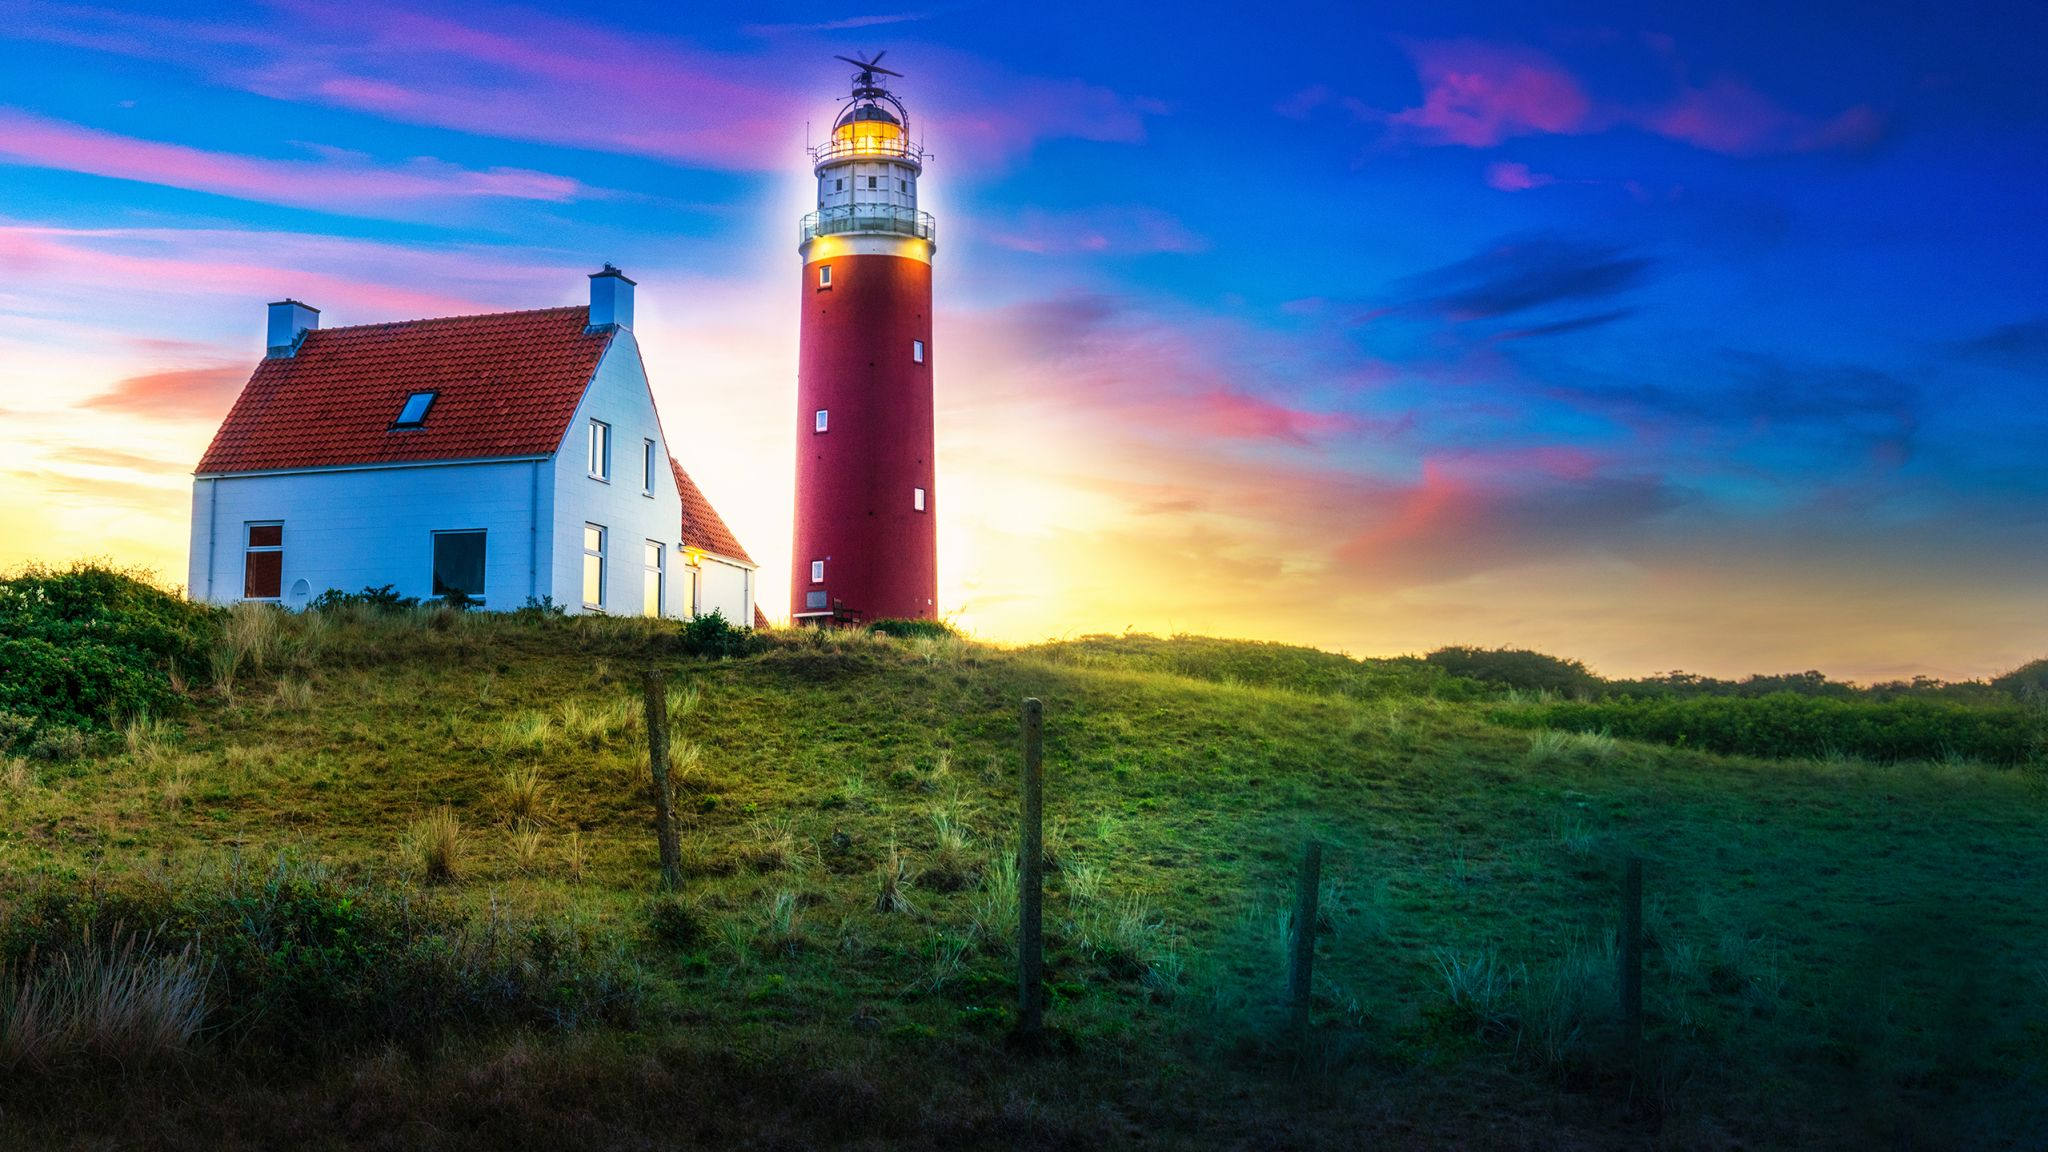 Sunset at Texel Lighthouse, Netherlands